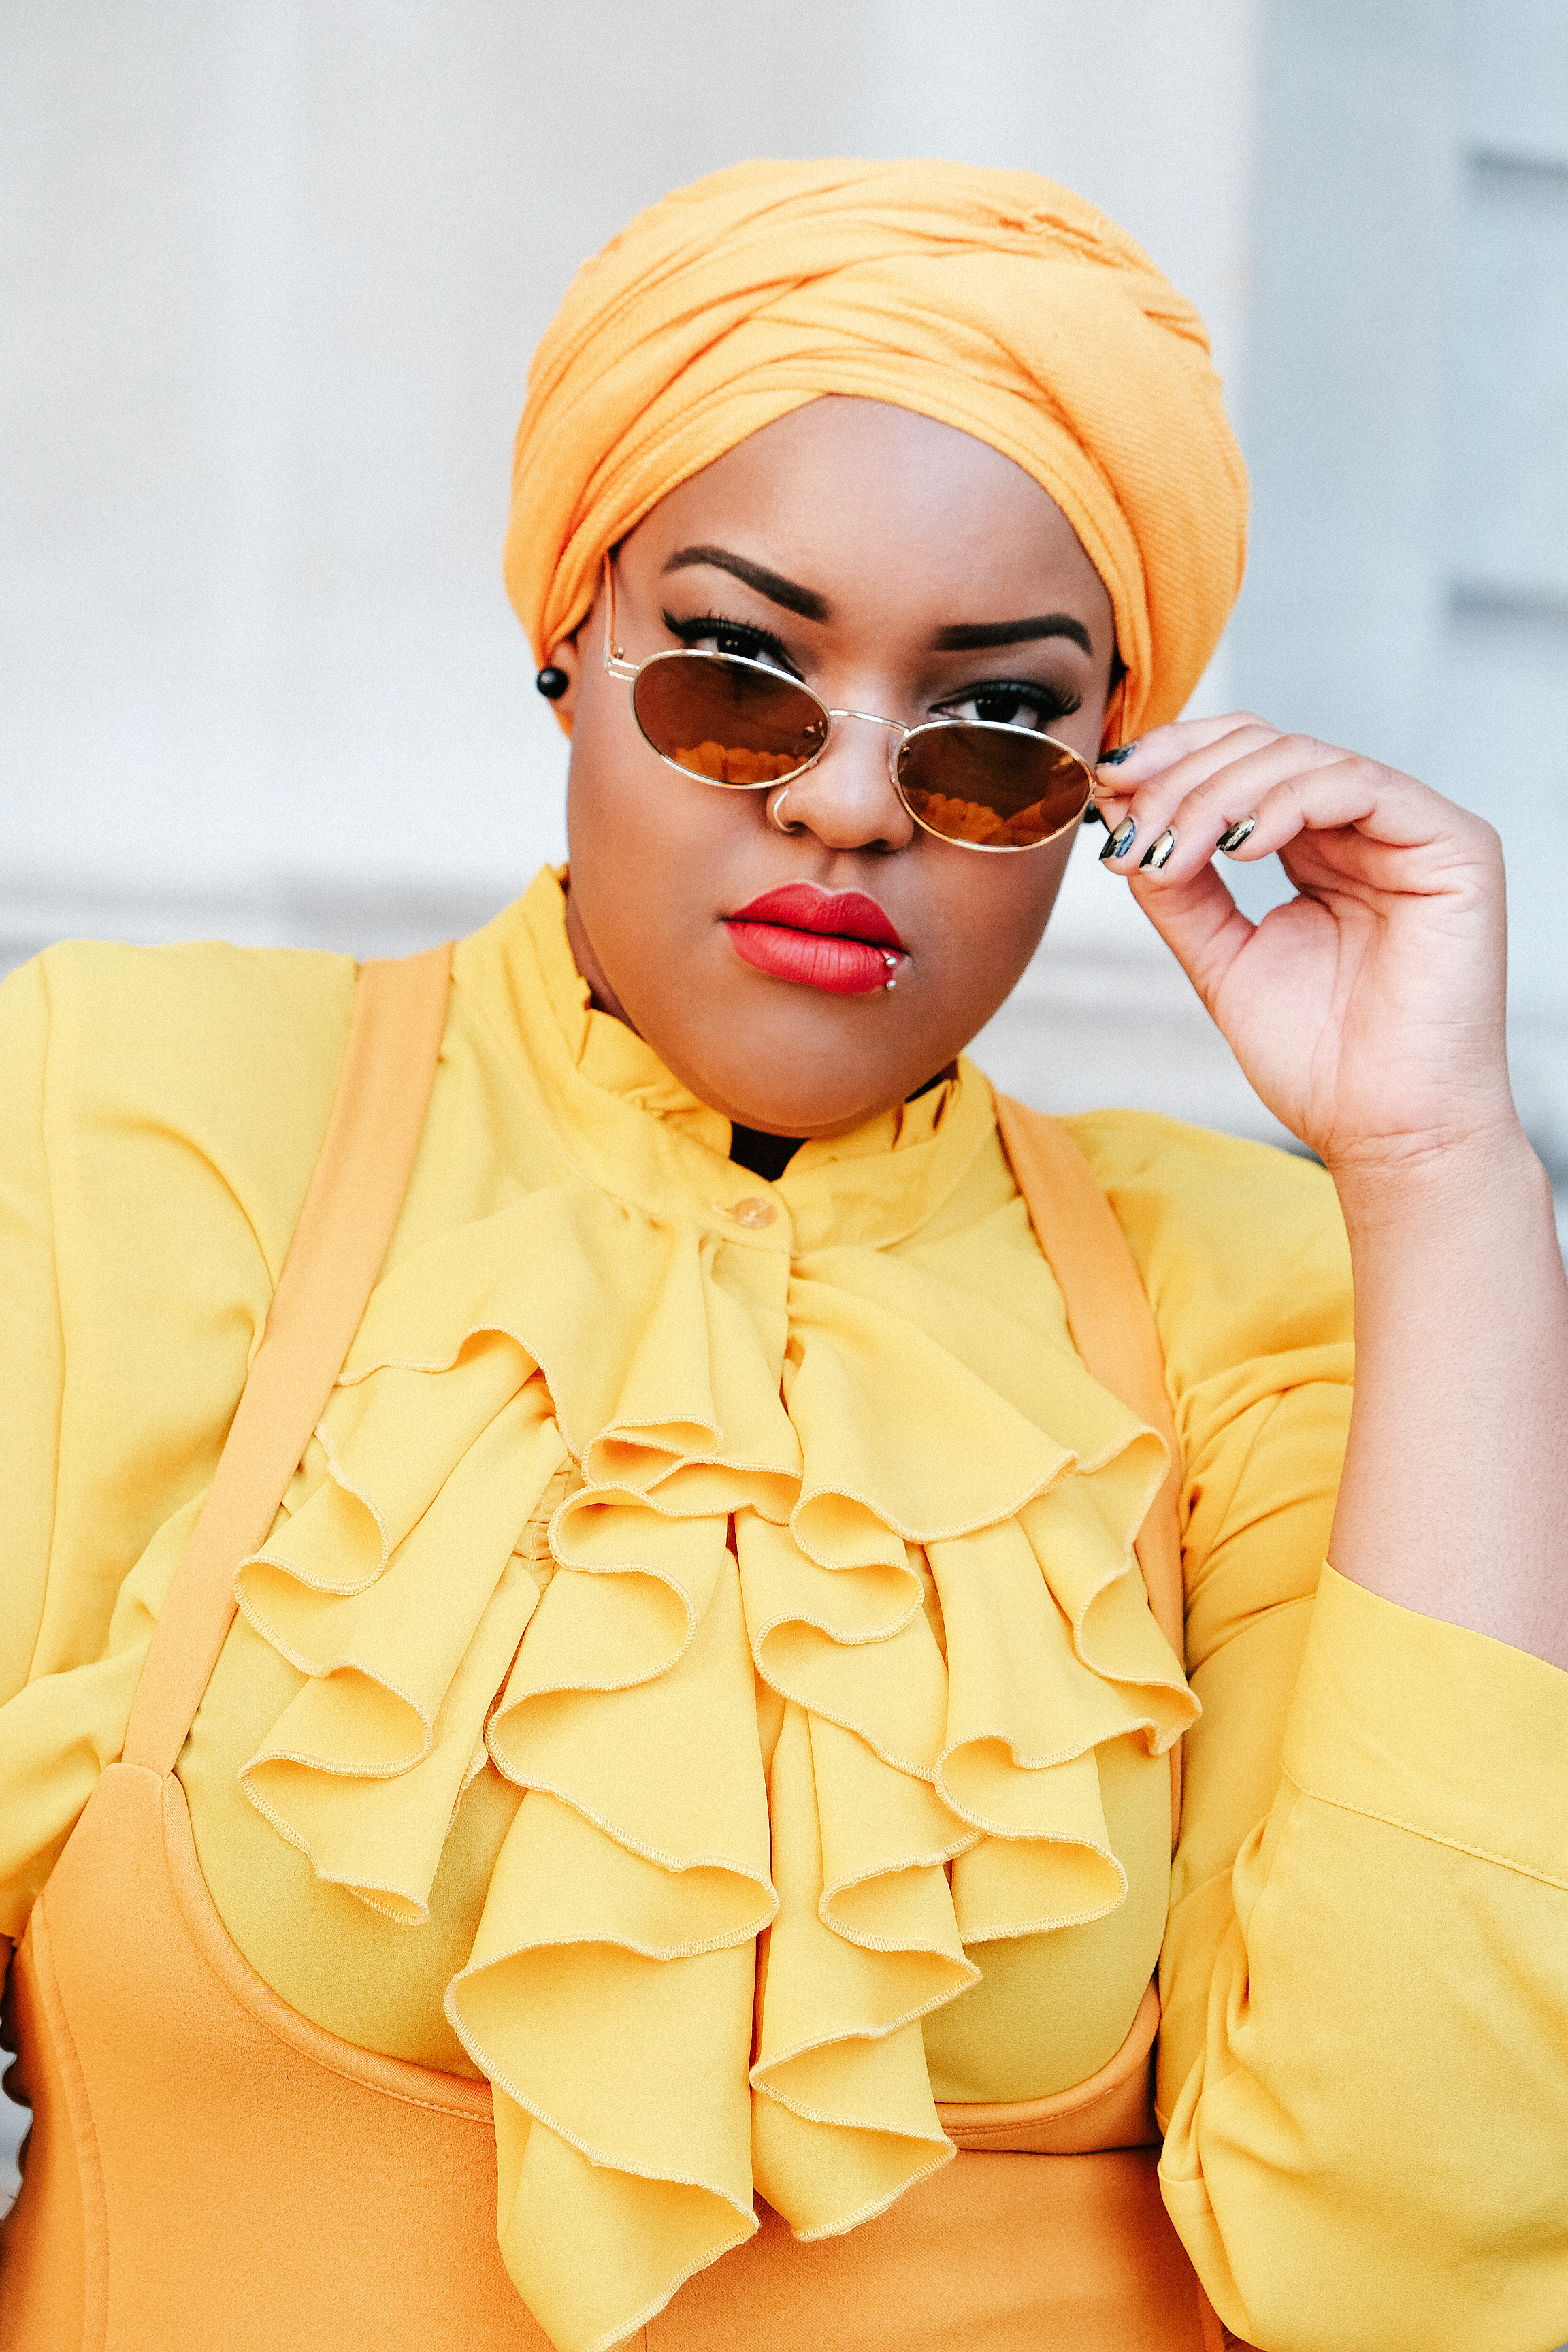 Leah-Vernon-Plus-Size-Body-Positive-Model-Detroit-Muslim-Girl-Black-Instagram-Bloggers-3.JPG